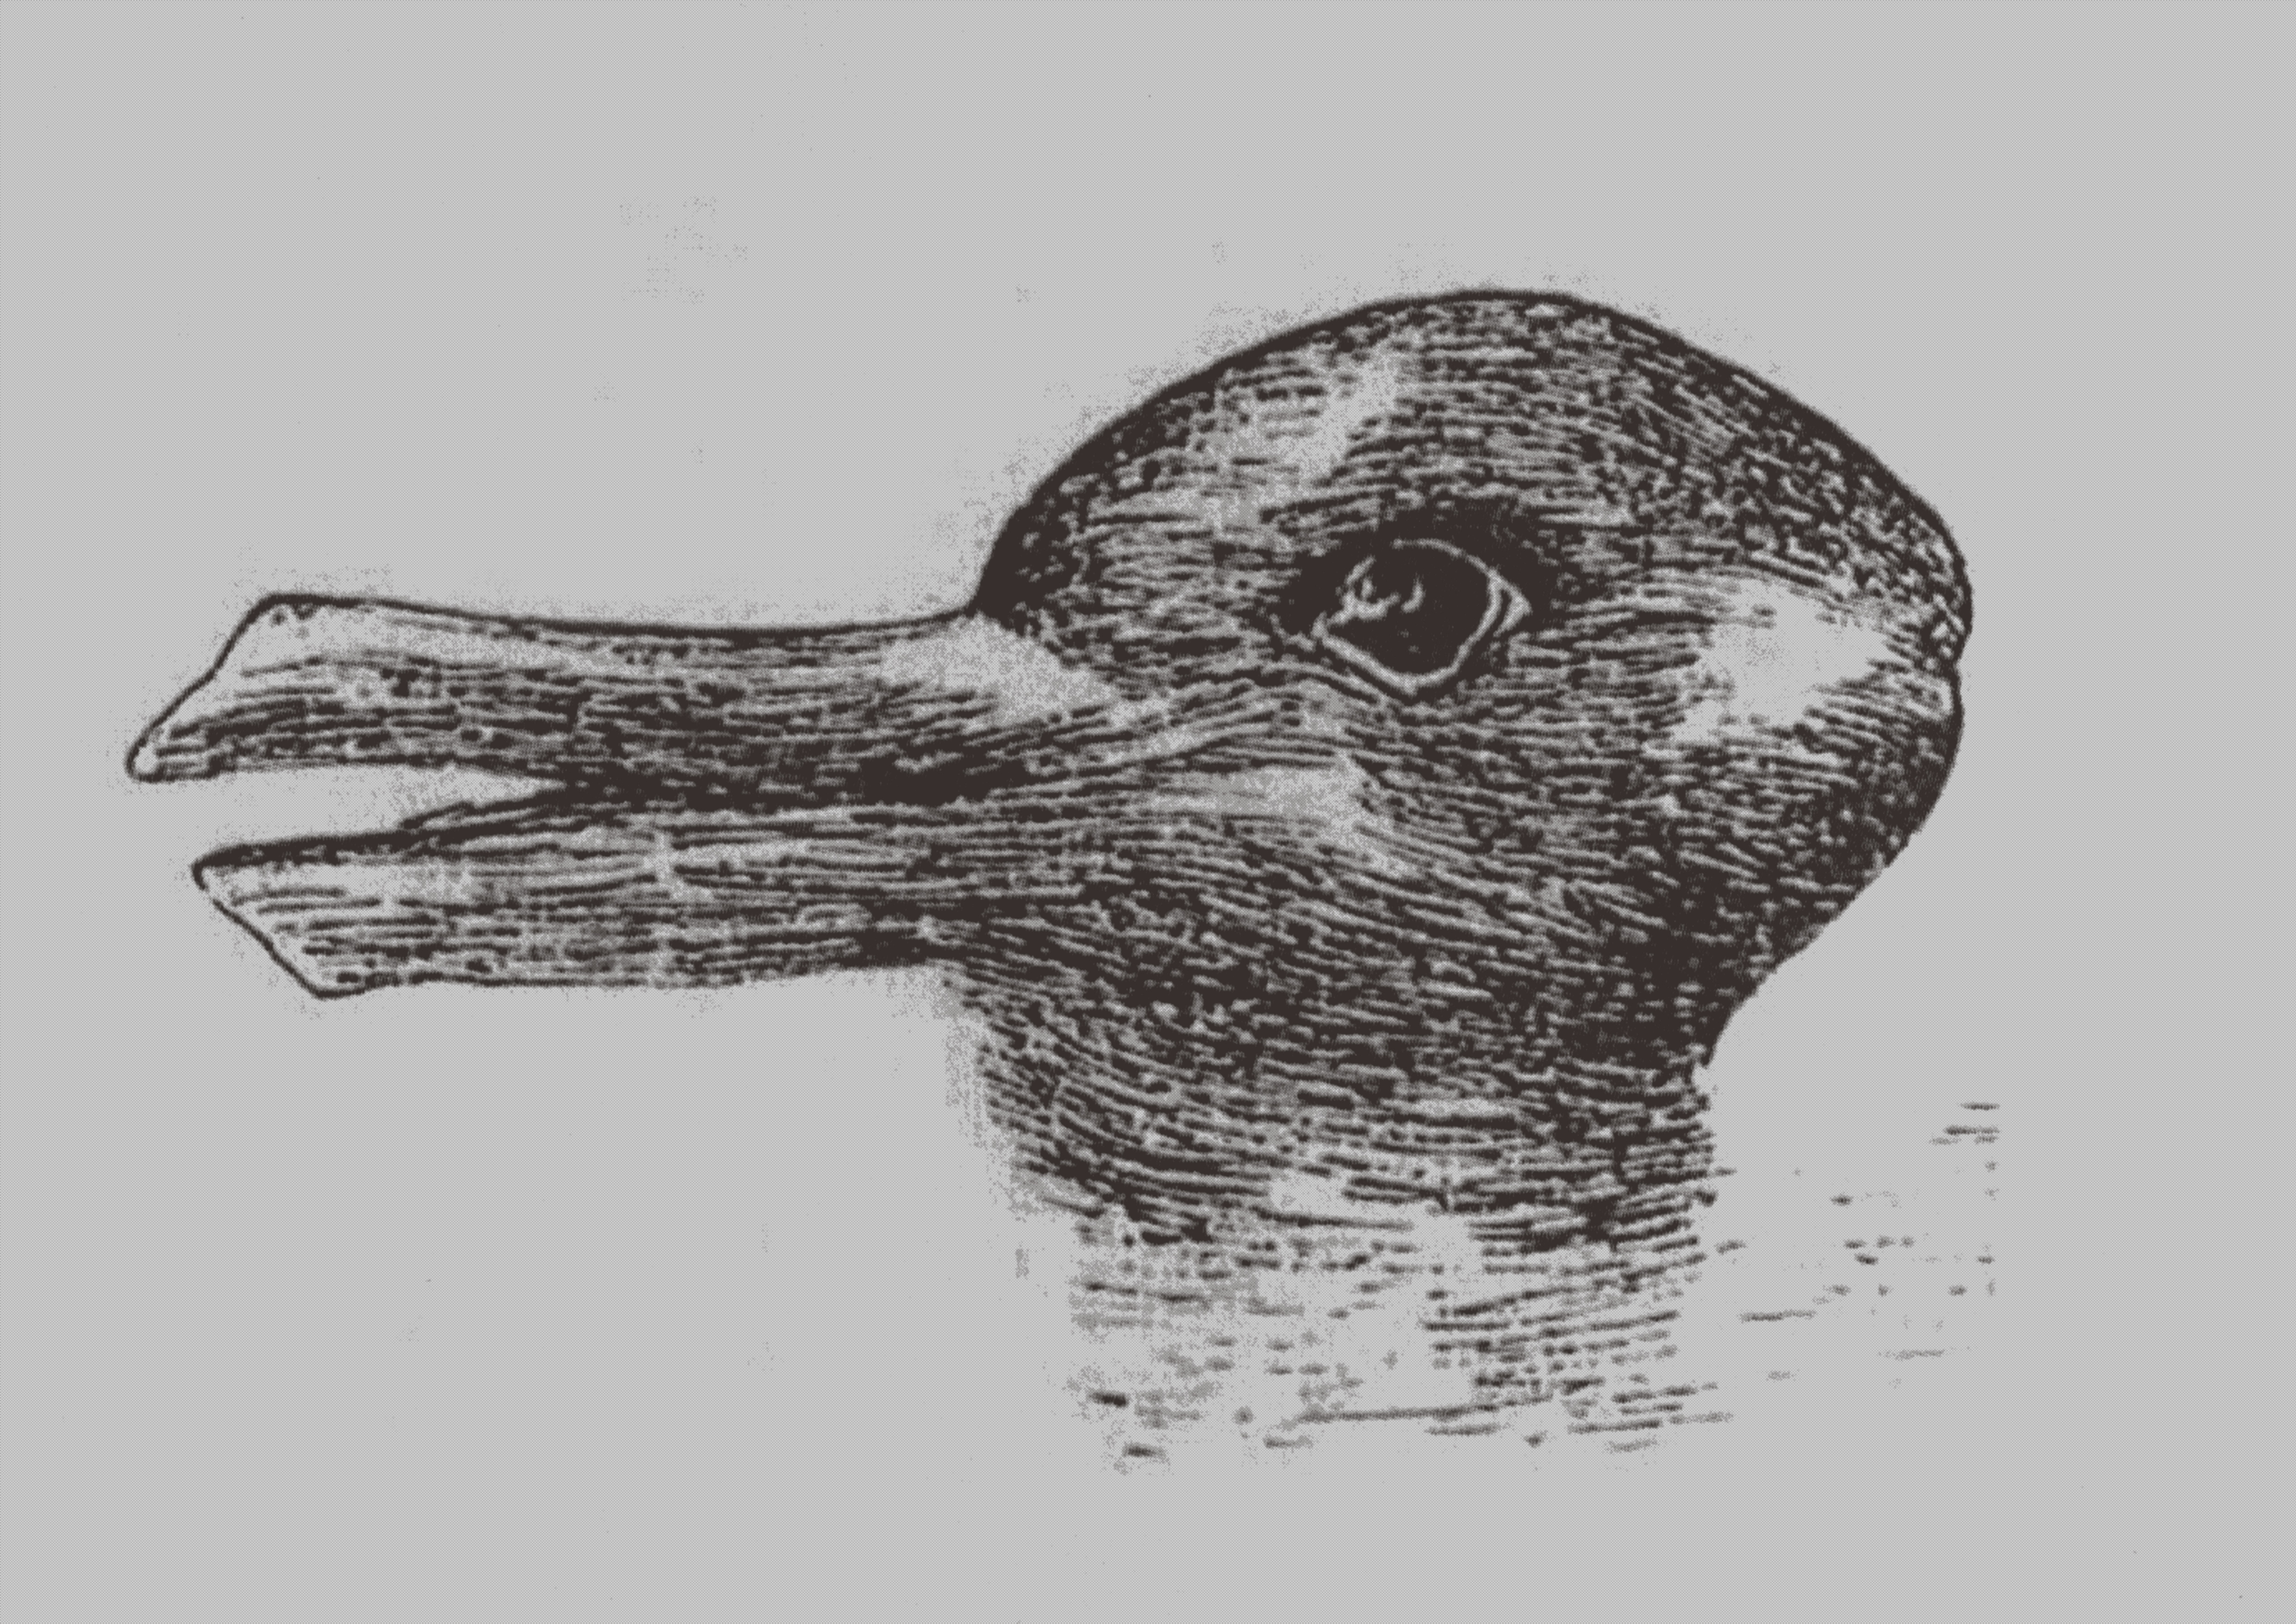 Duck-Rabbit illusion. From: Jastrow, J. The mind's eye. Popular Science Monthly, 1899.